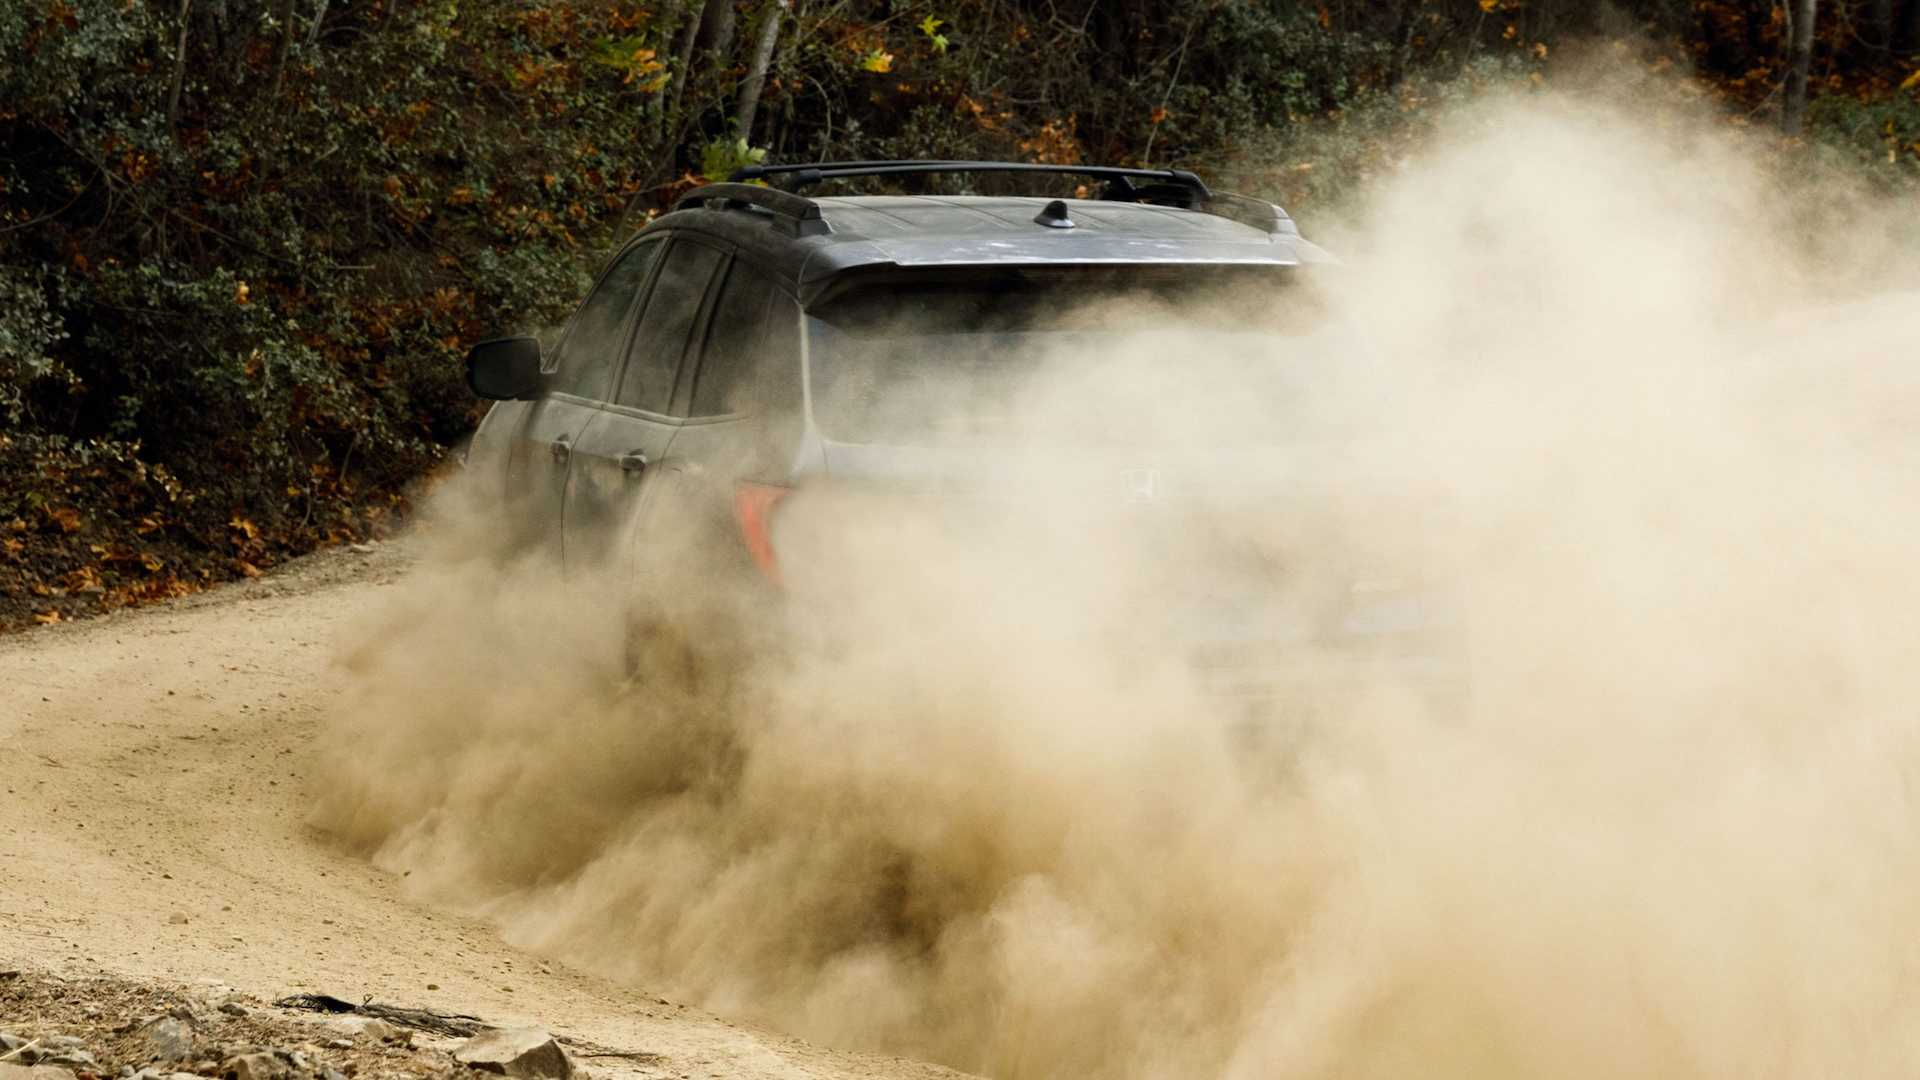 Honda Passport will be built in United States  and debut at LA show